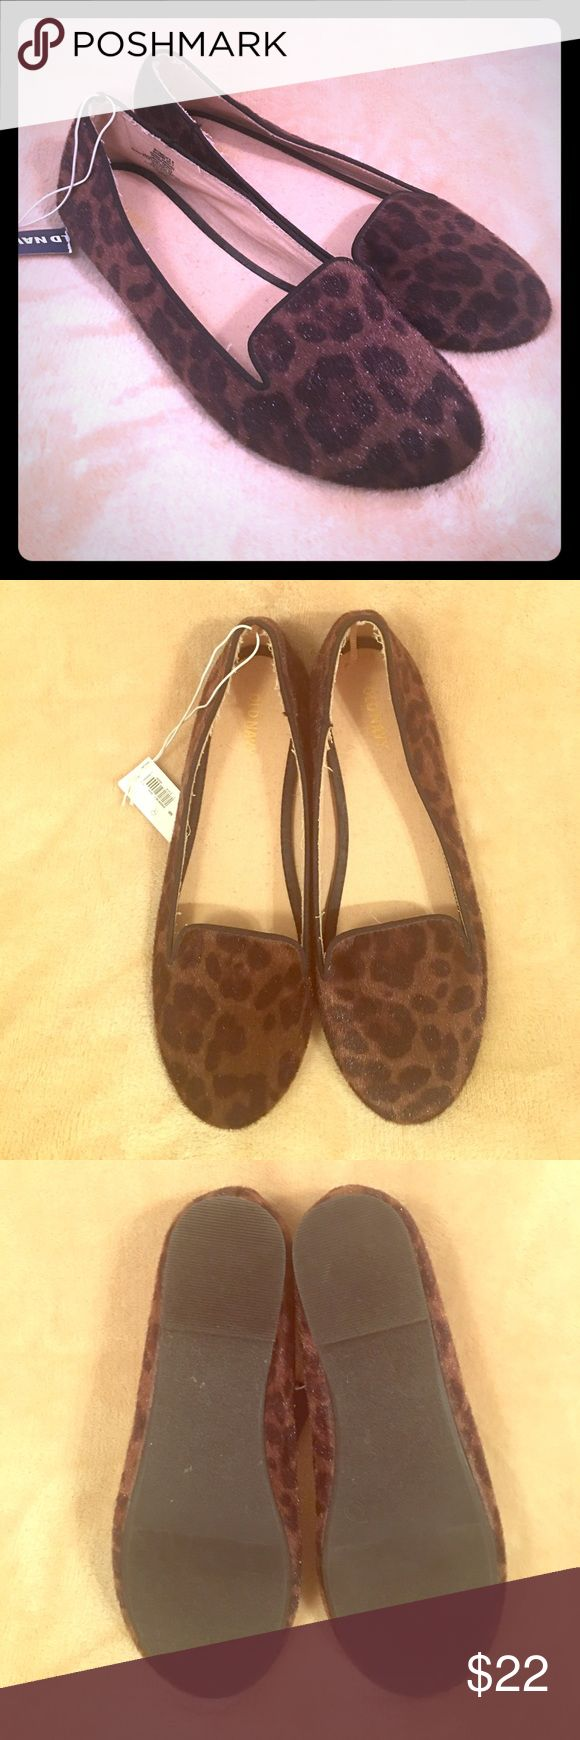 🆕Old Navy Flats New with tags. Brown leopard print, faux calf hair. Tag has been ripped, but shoes are unworn. Old Navy Shoes Flats & Loafers